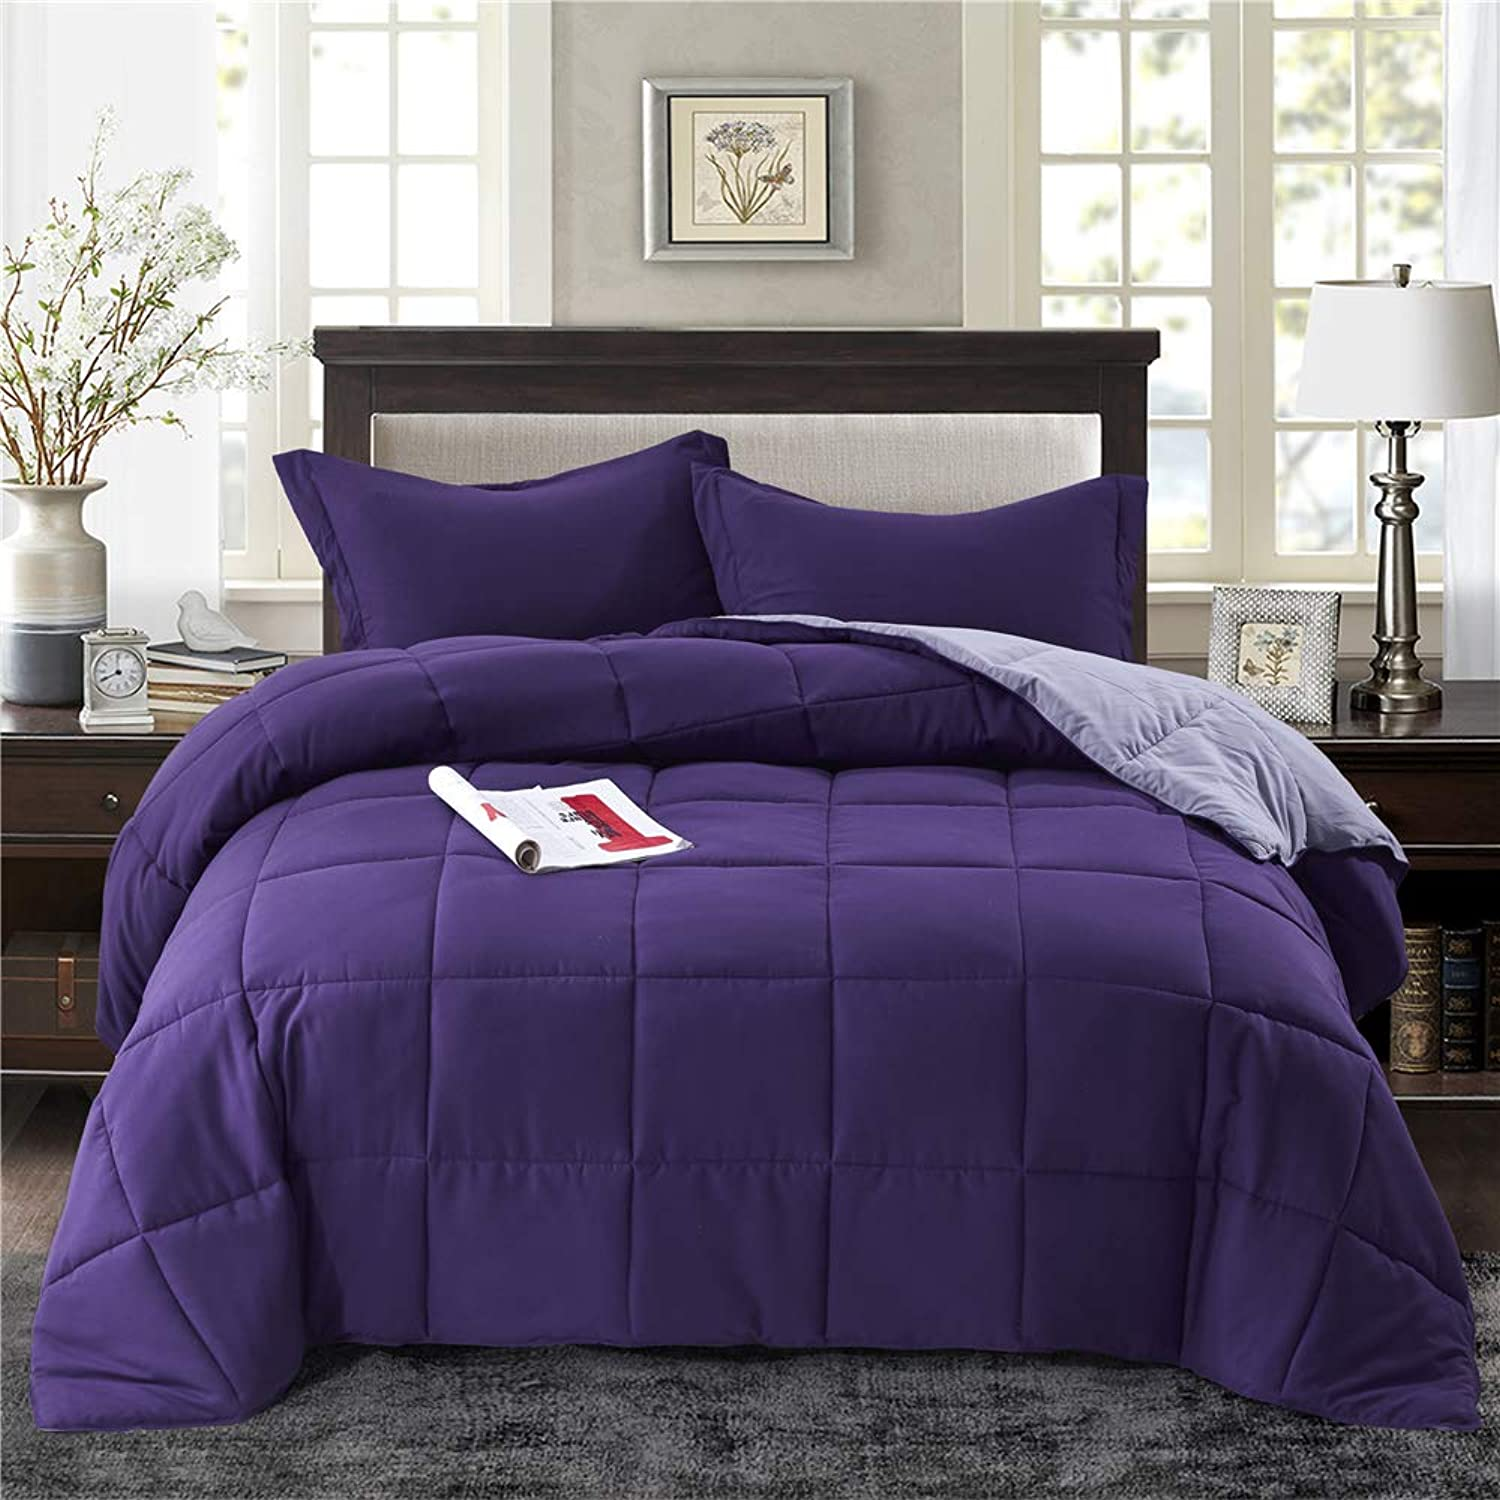 HIG 3pc Down Alternative Comforter Set -All Season Reversible Comforter with Two Shams -Quilted Duvet Insert with Corner Tabs -Box Stitched -Hypoallergenic, Soft, Fluffy (King CK, Light Medium Purple)